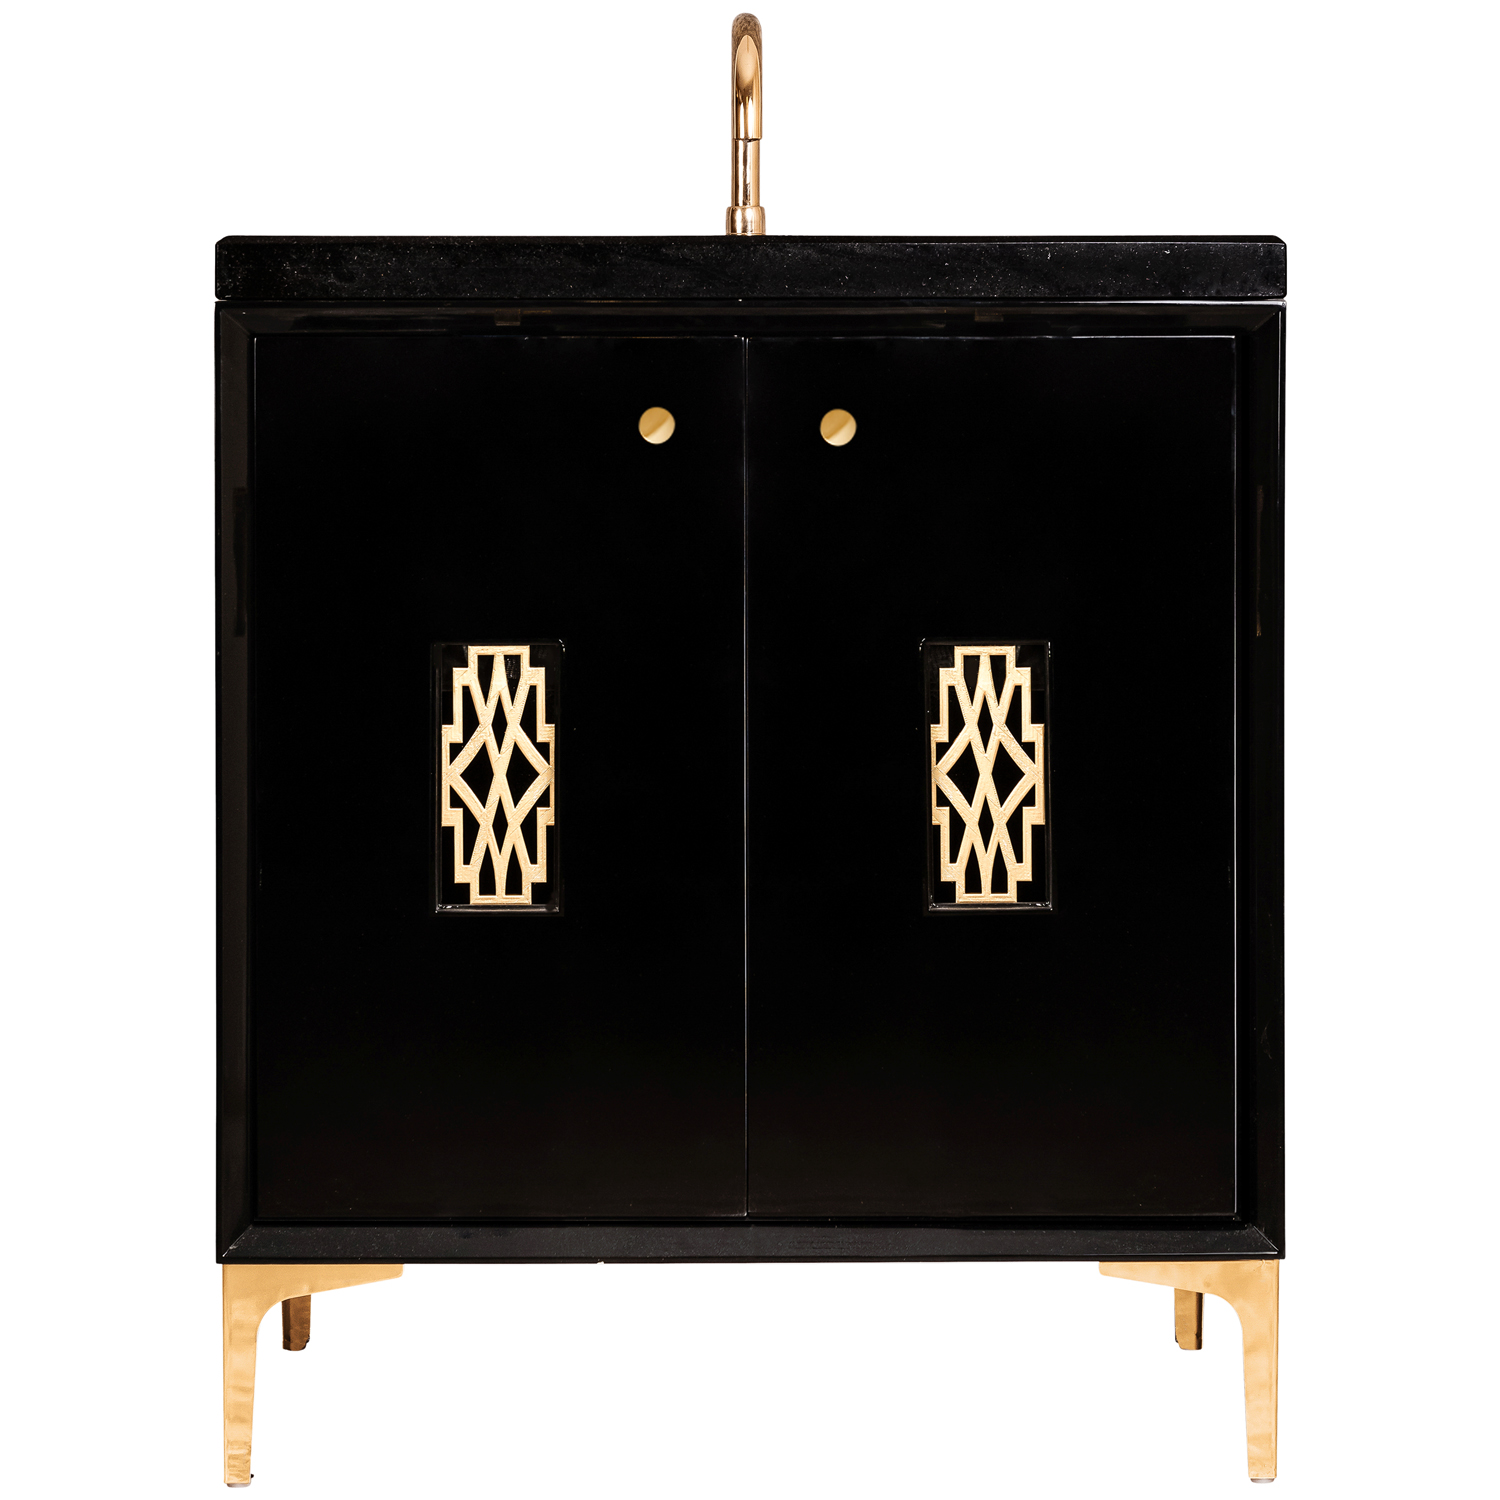 "VAN30B-0011 30"" Black Frame With Deco - Shown with PB (Polished Brass)"